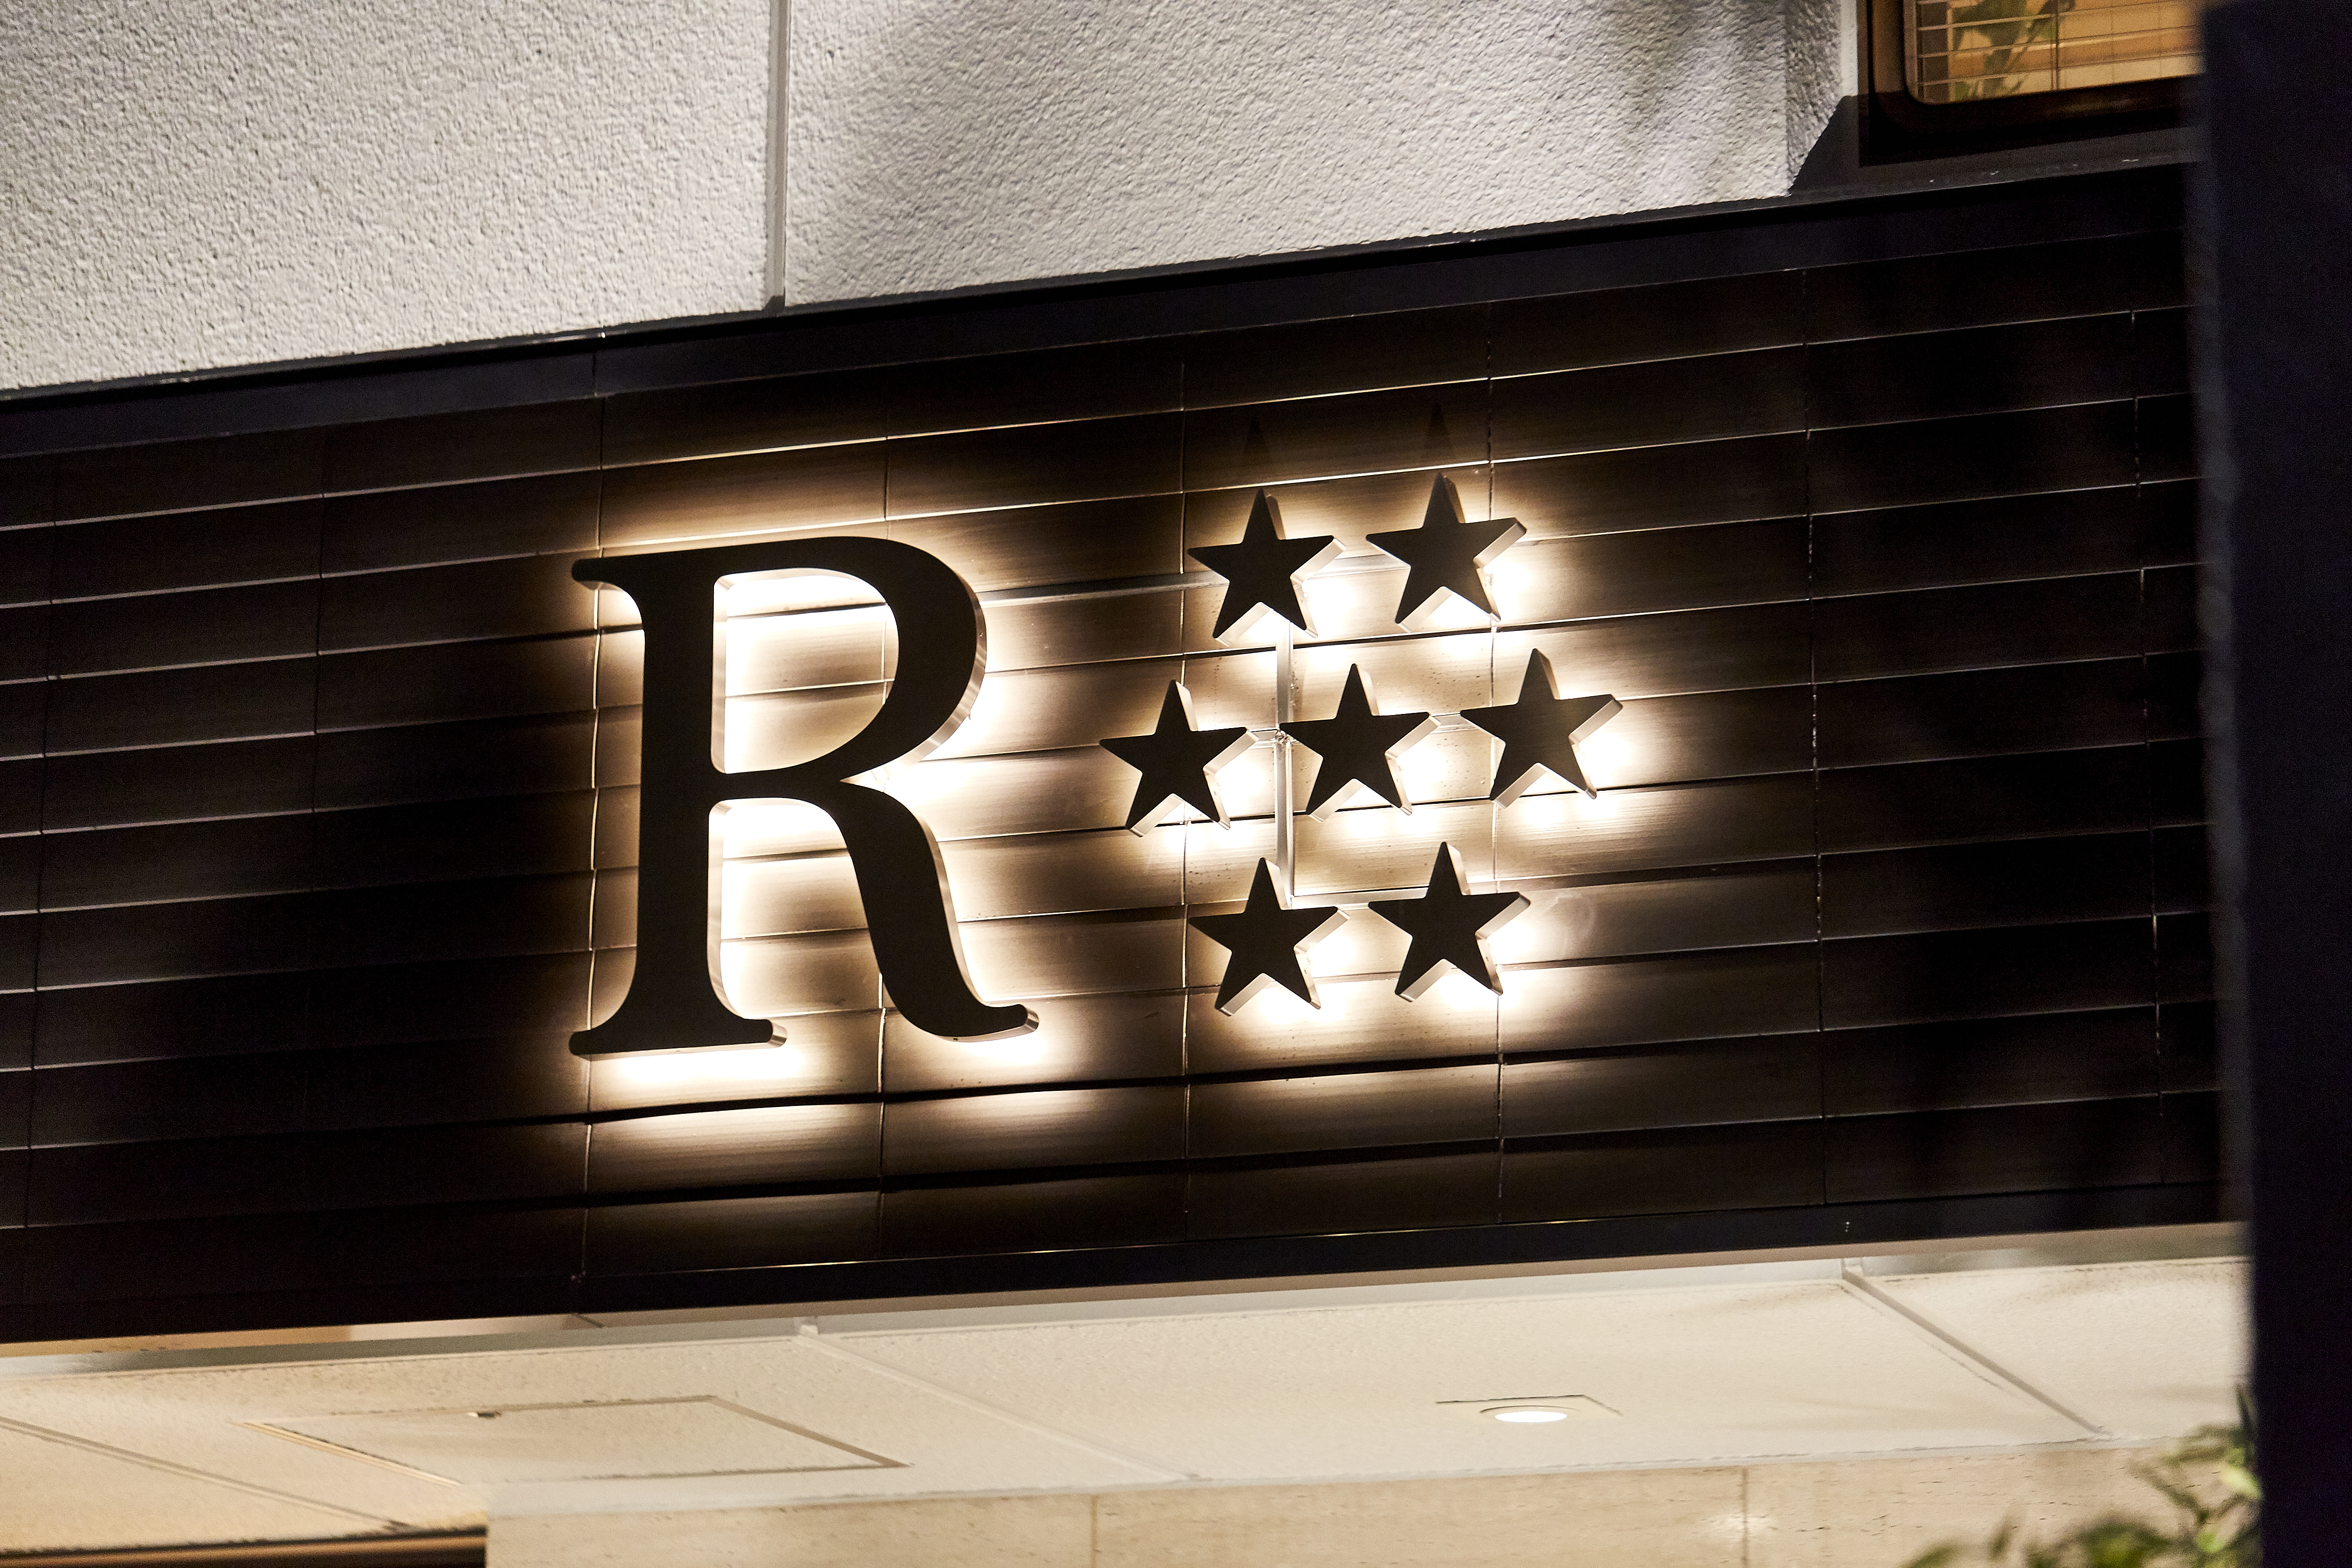 R.Star Hostel Kyoto